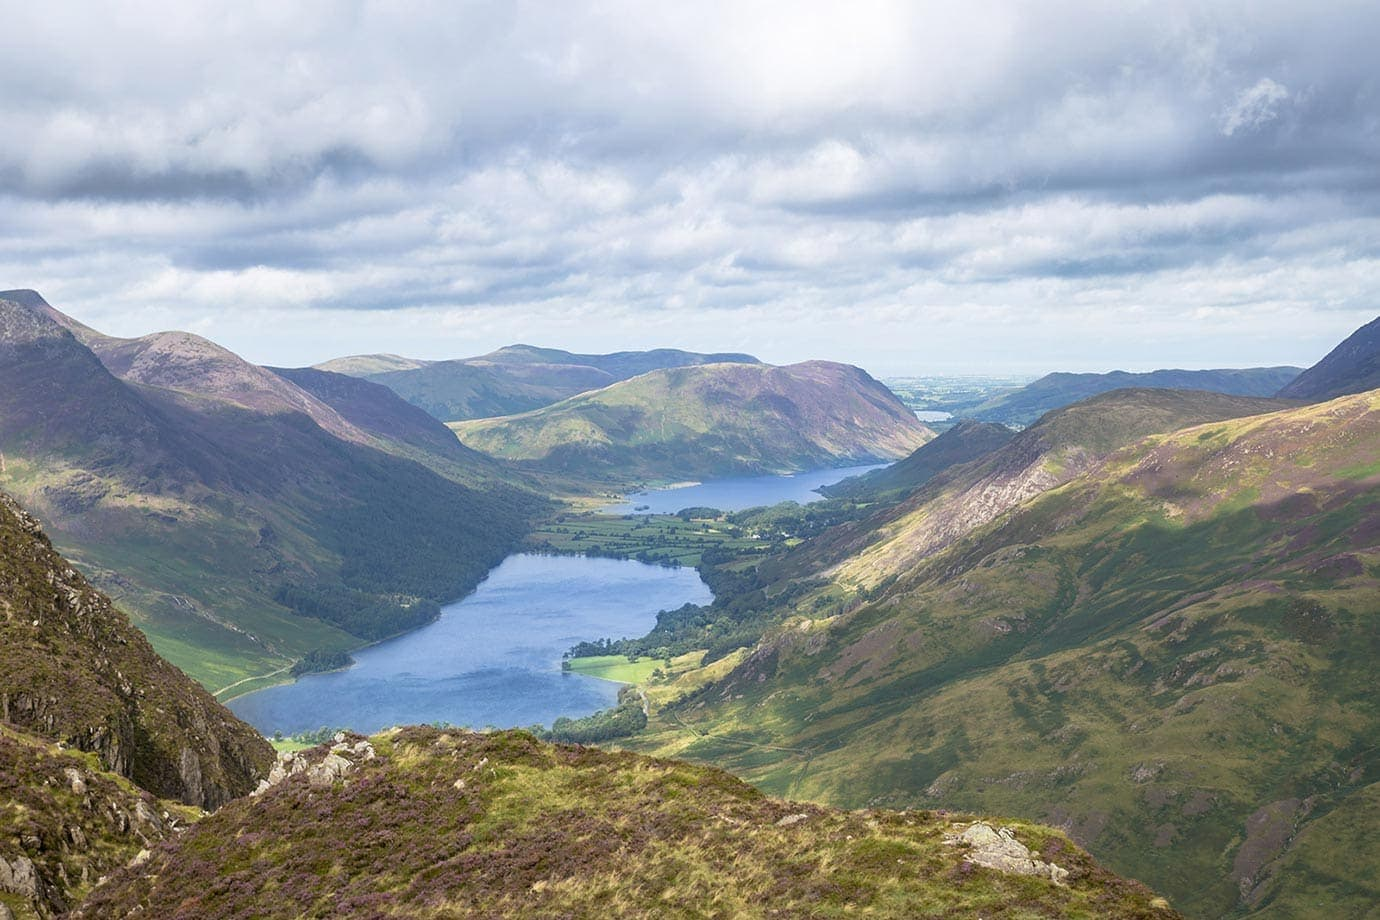 Photos of the Lake District